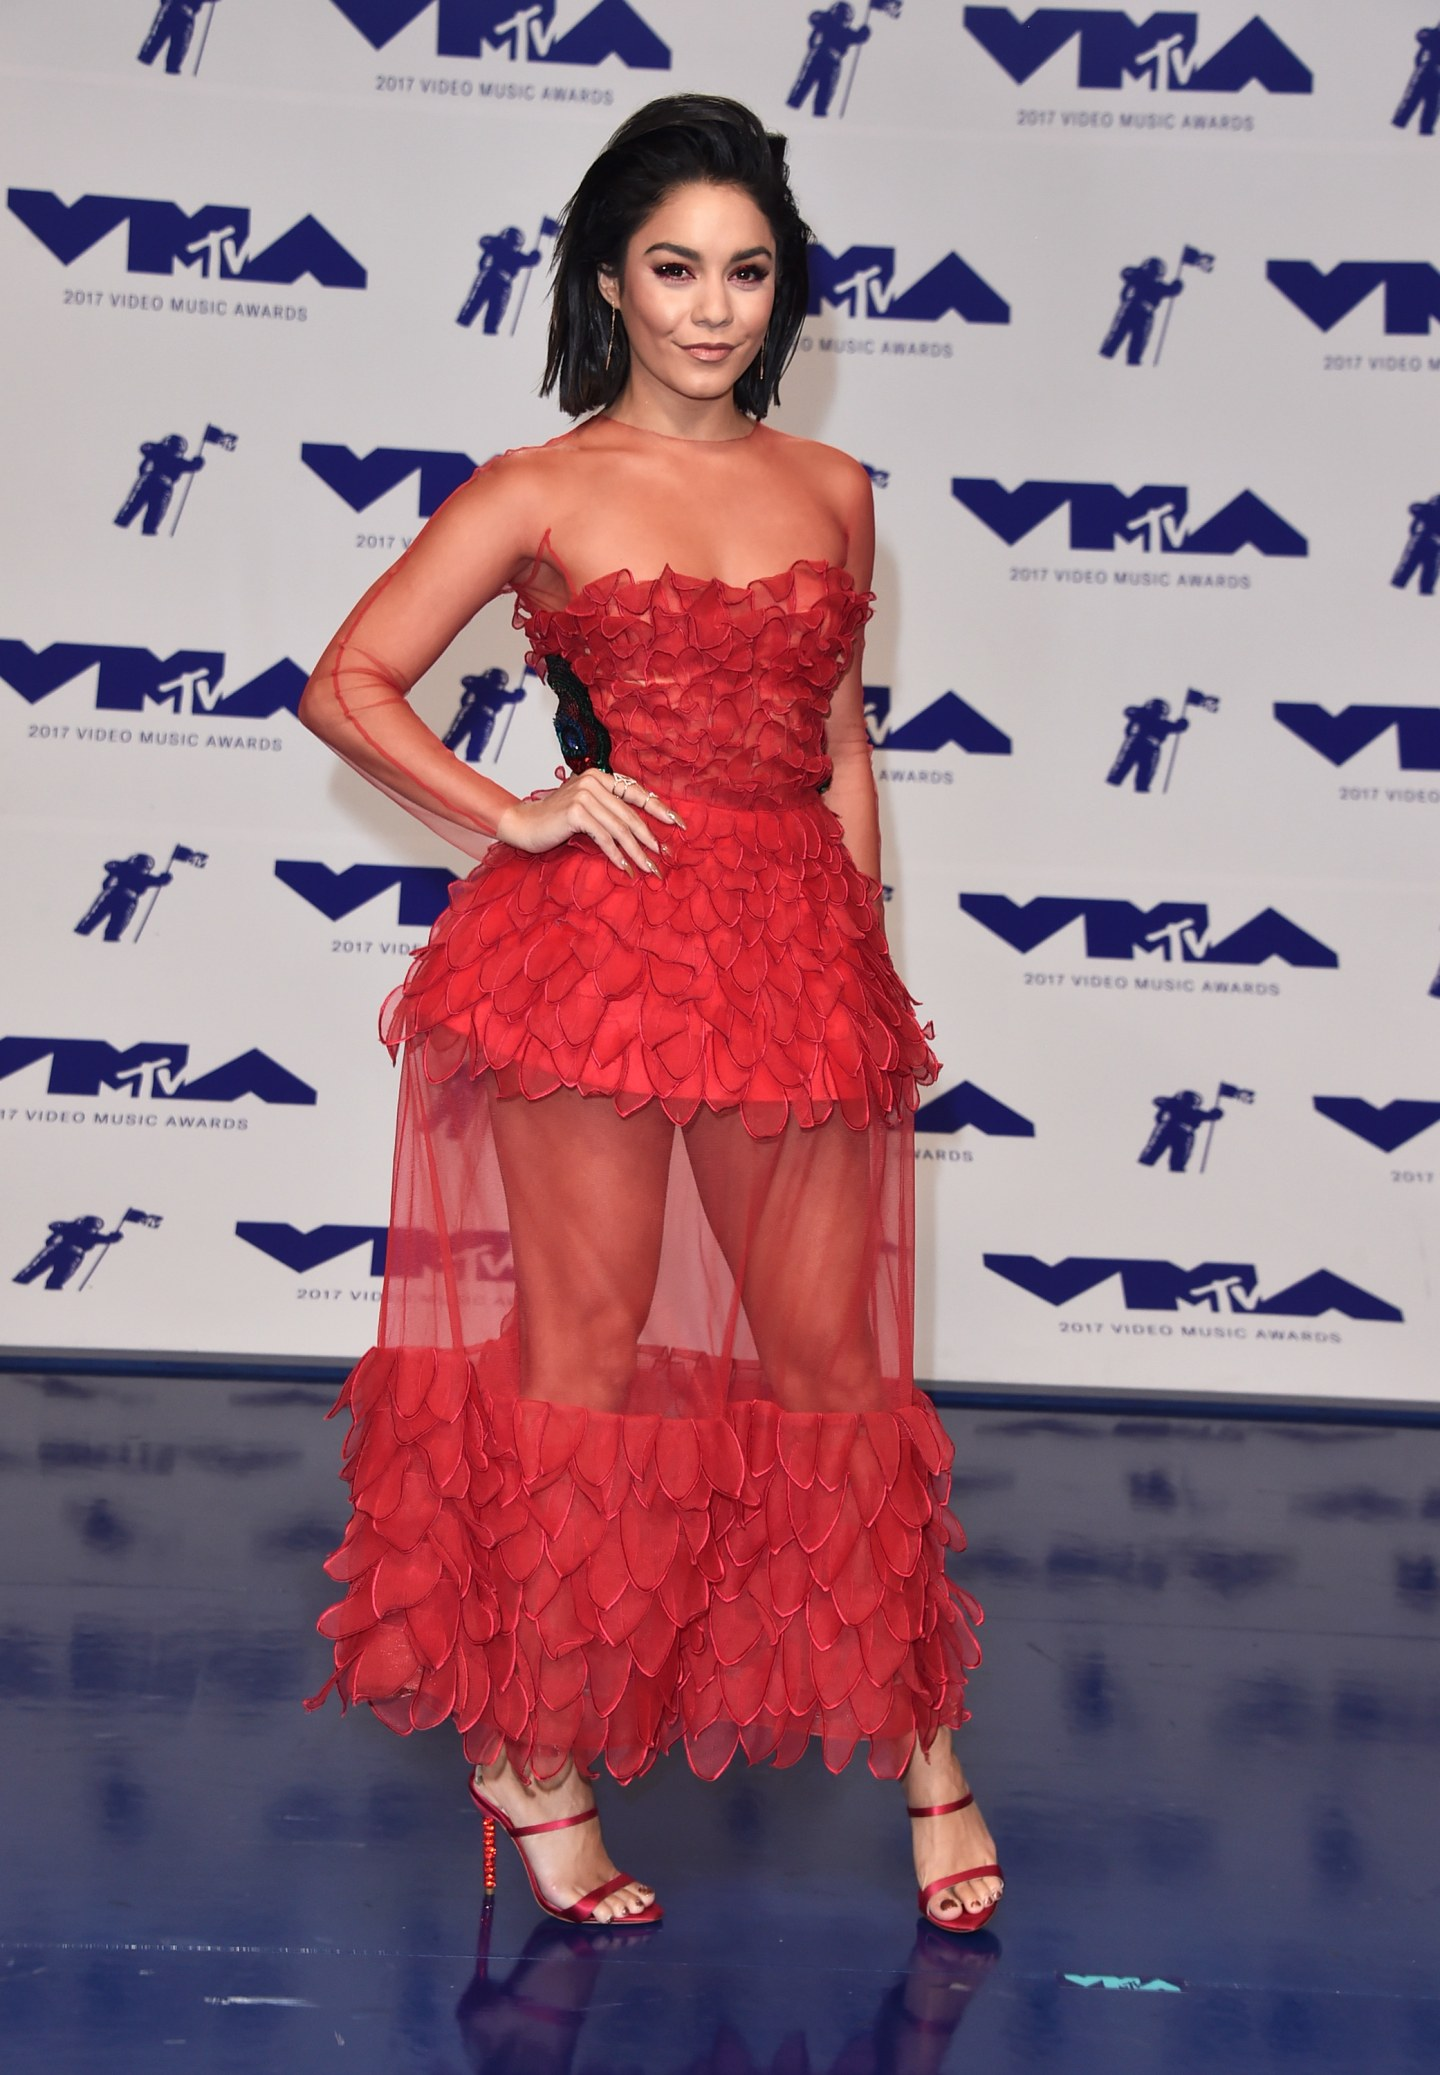 Here Are All The Looks You Need To See From The 2017 VMAs Red Carpet